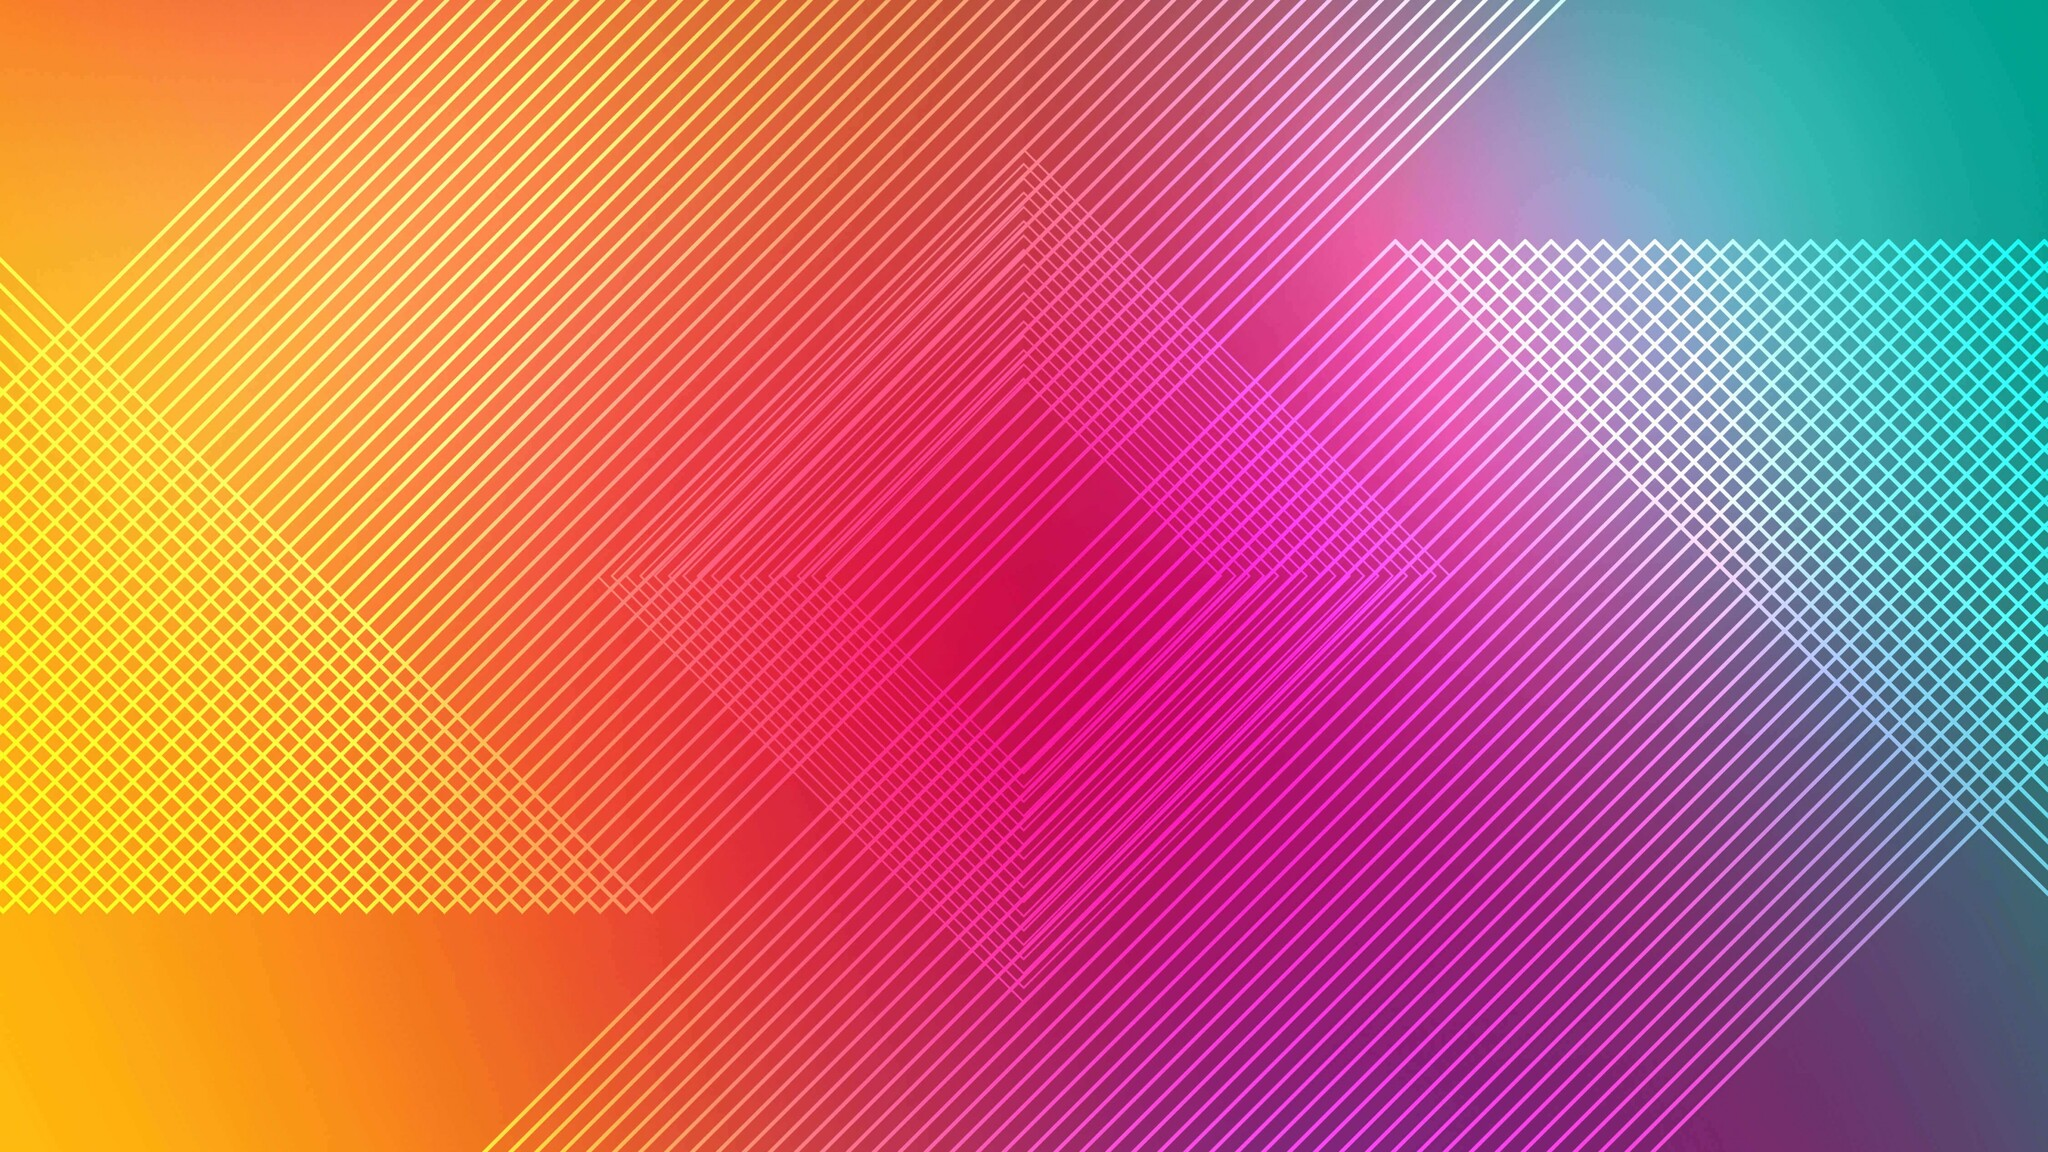 2048x1152 Multicolor Abstract 4k 2048x1152 Resolution HD ...